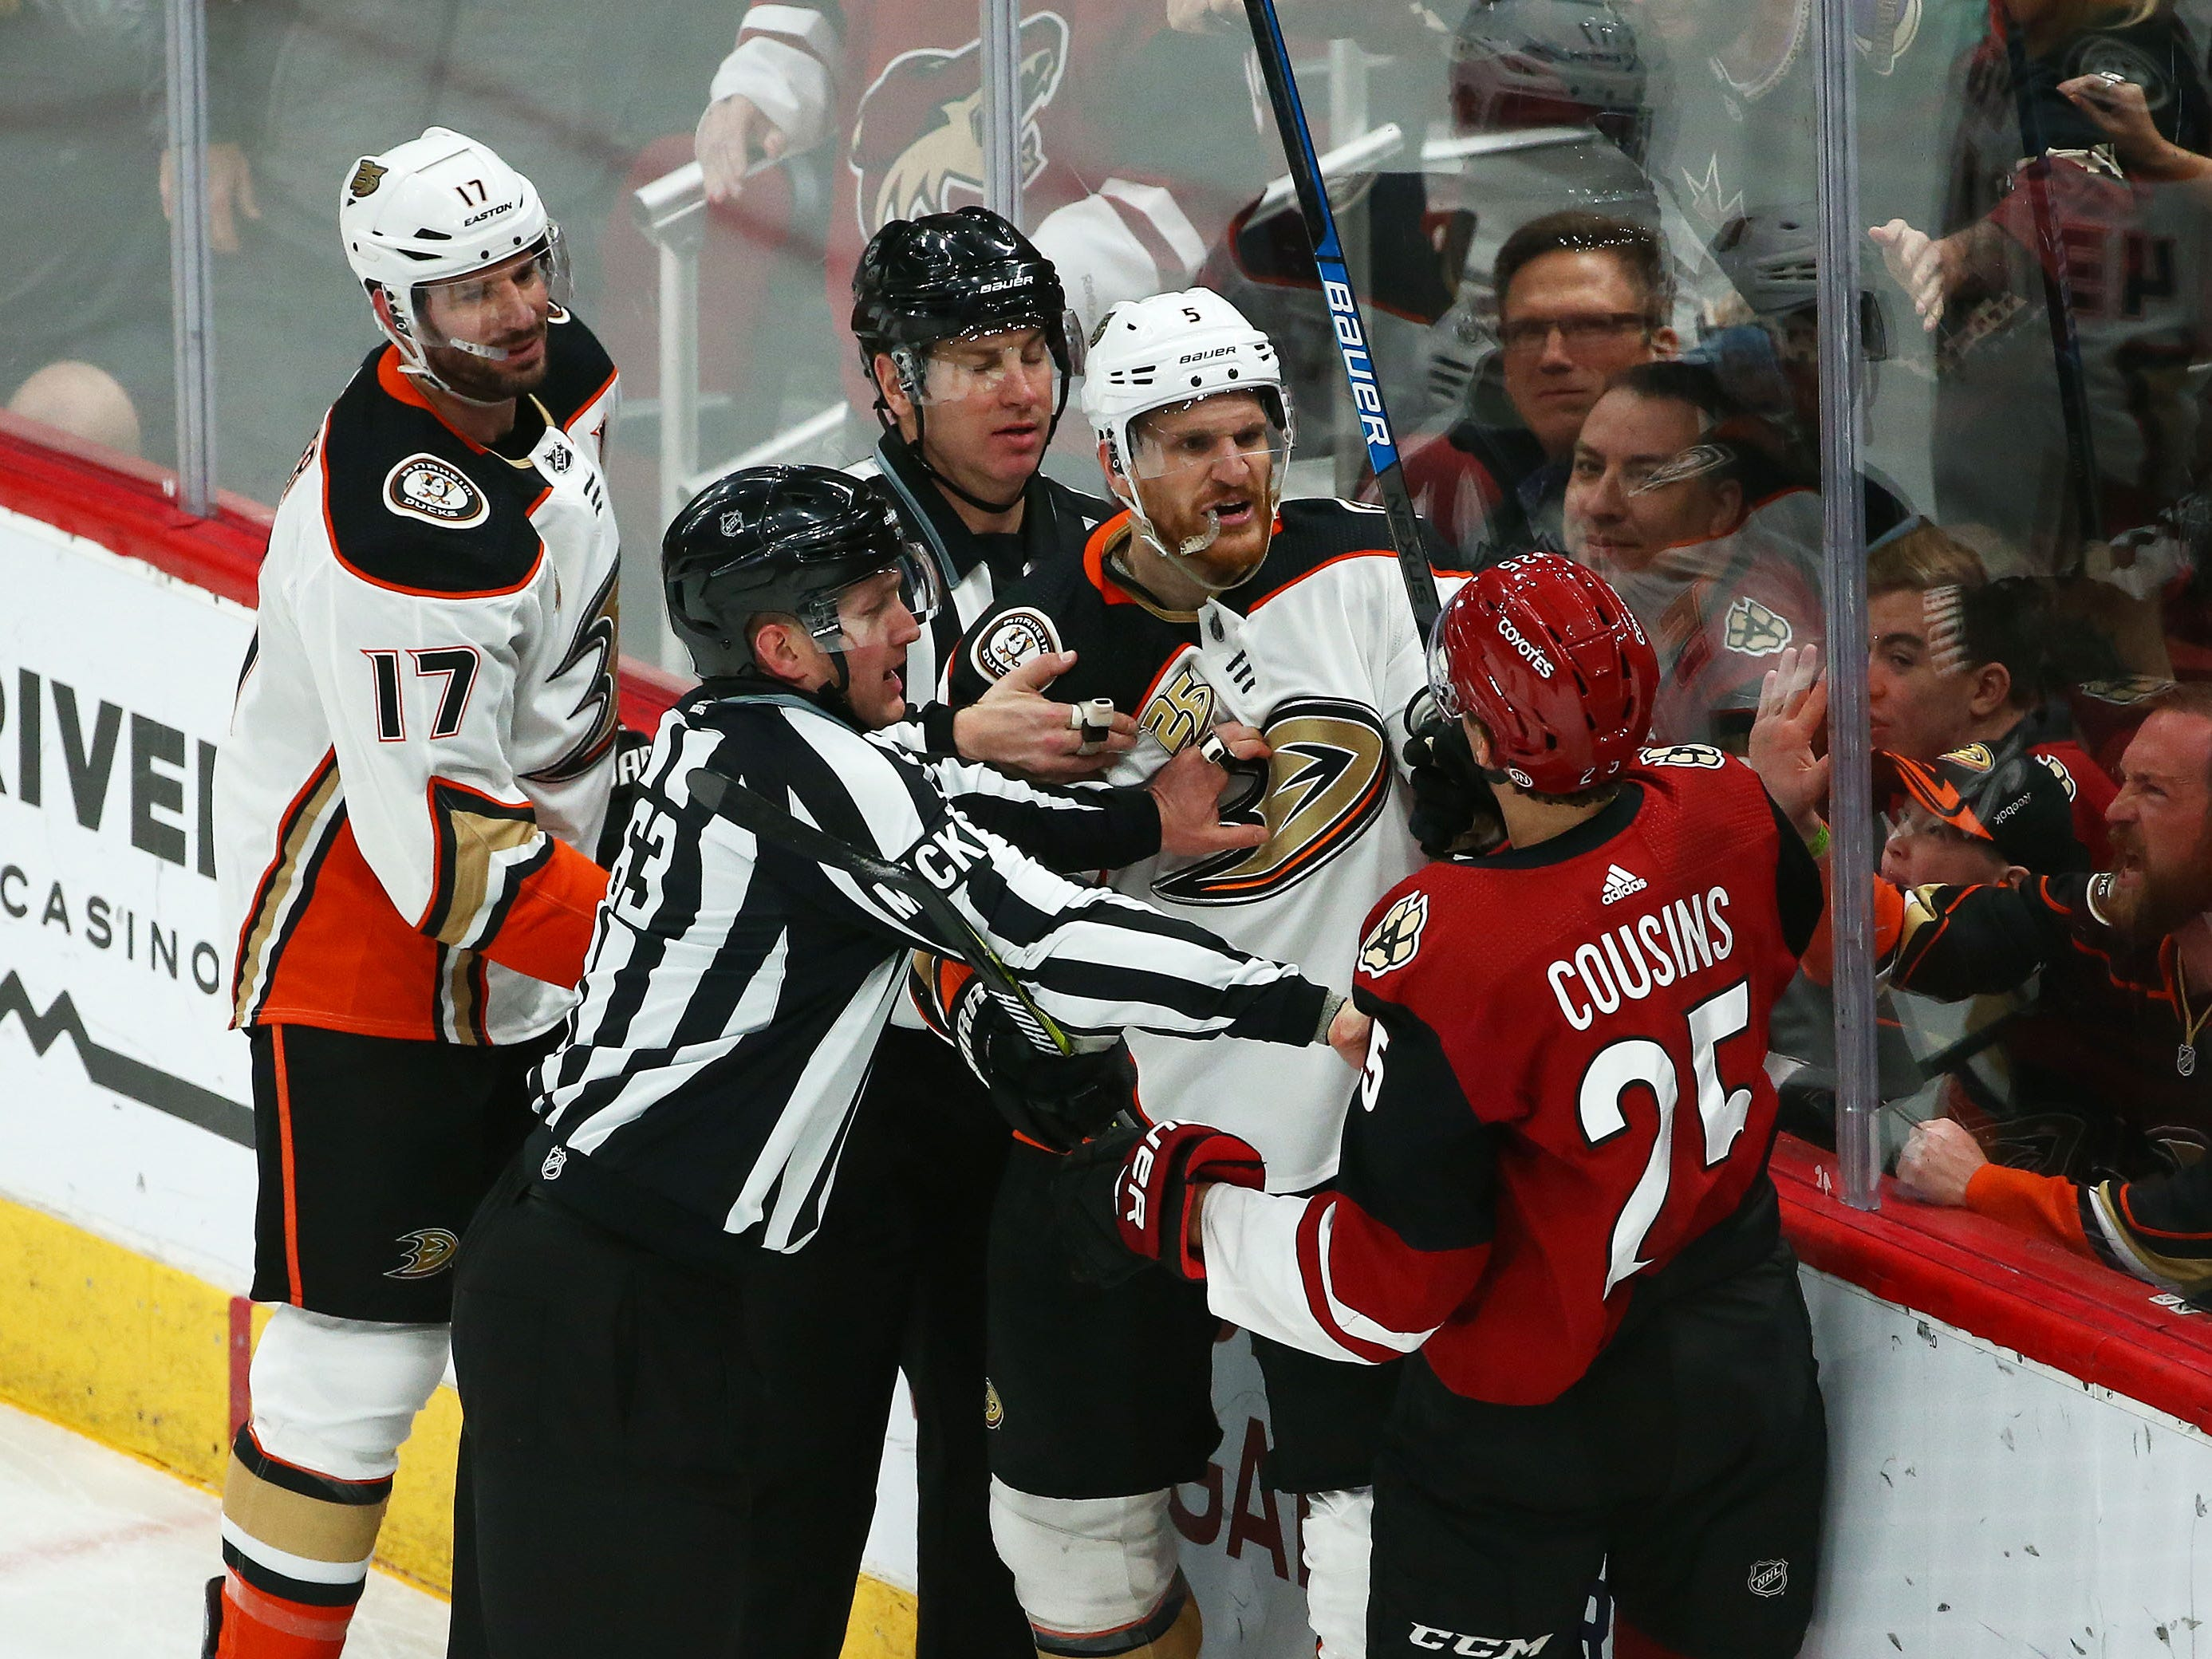 Arizona Coyotes center Nick Cousins (25) and Anaheim Ducks defenseman Korbinian Holzer (5) exchange words in the first period on Mar. 5, 2019, at Gila River Arena in Glendale, Ariz.